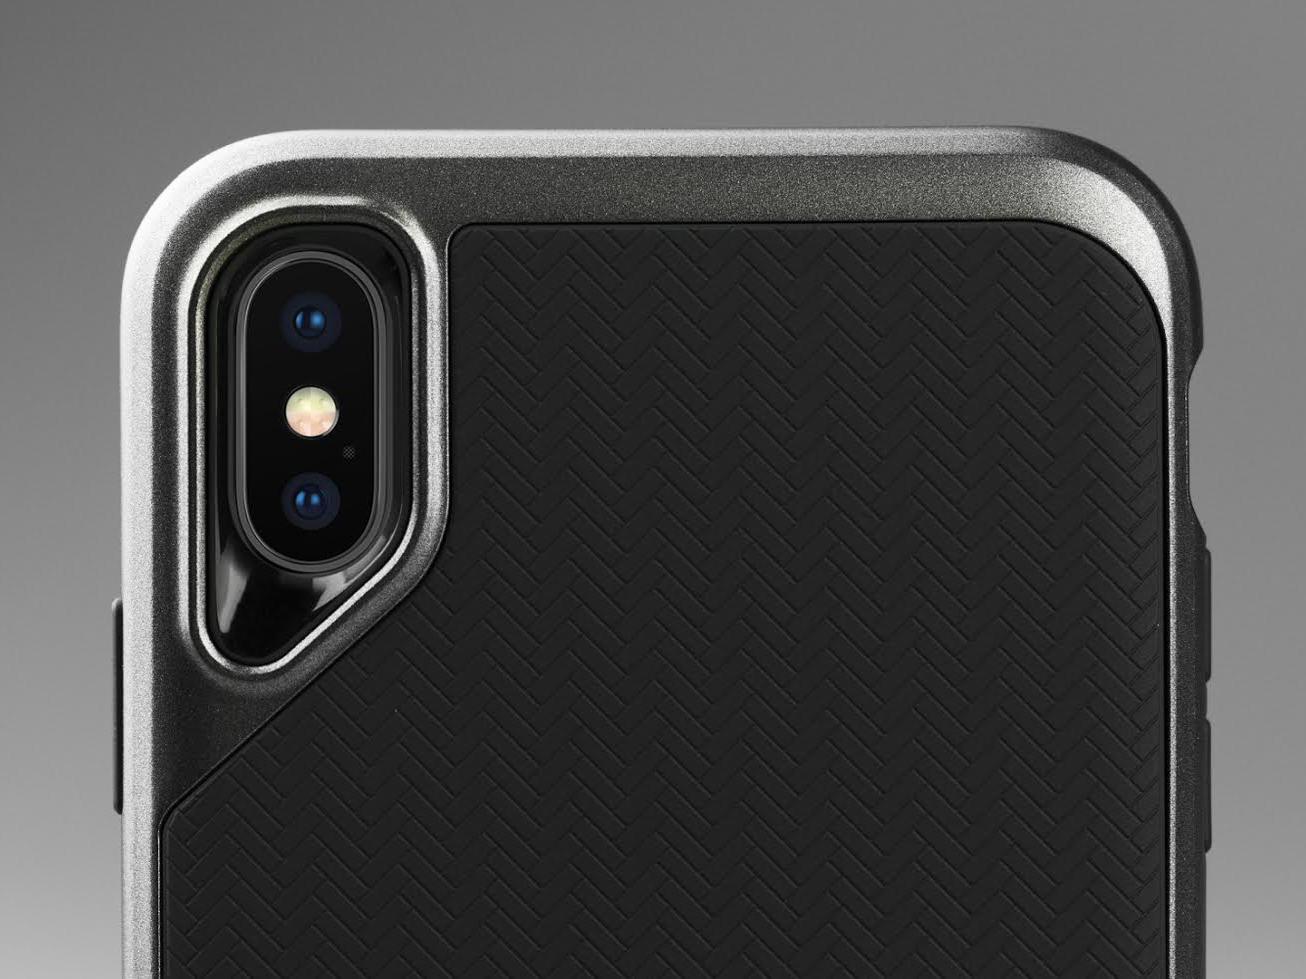 A Look At Spigens Iphone Xs And Max Cases Case Spigen Geometric Pattern Softcase Liquid Air Casing Neo Hybrid Is One Of The Manufacturers Most Versatile With Its Stylish Sleek Modern Design This Time Around Has Overhauled